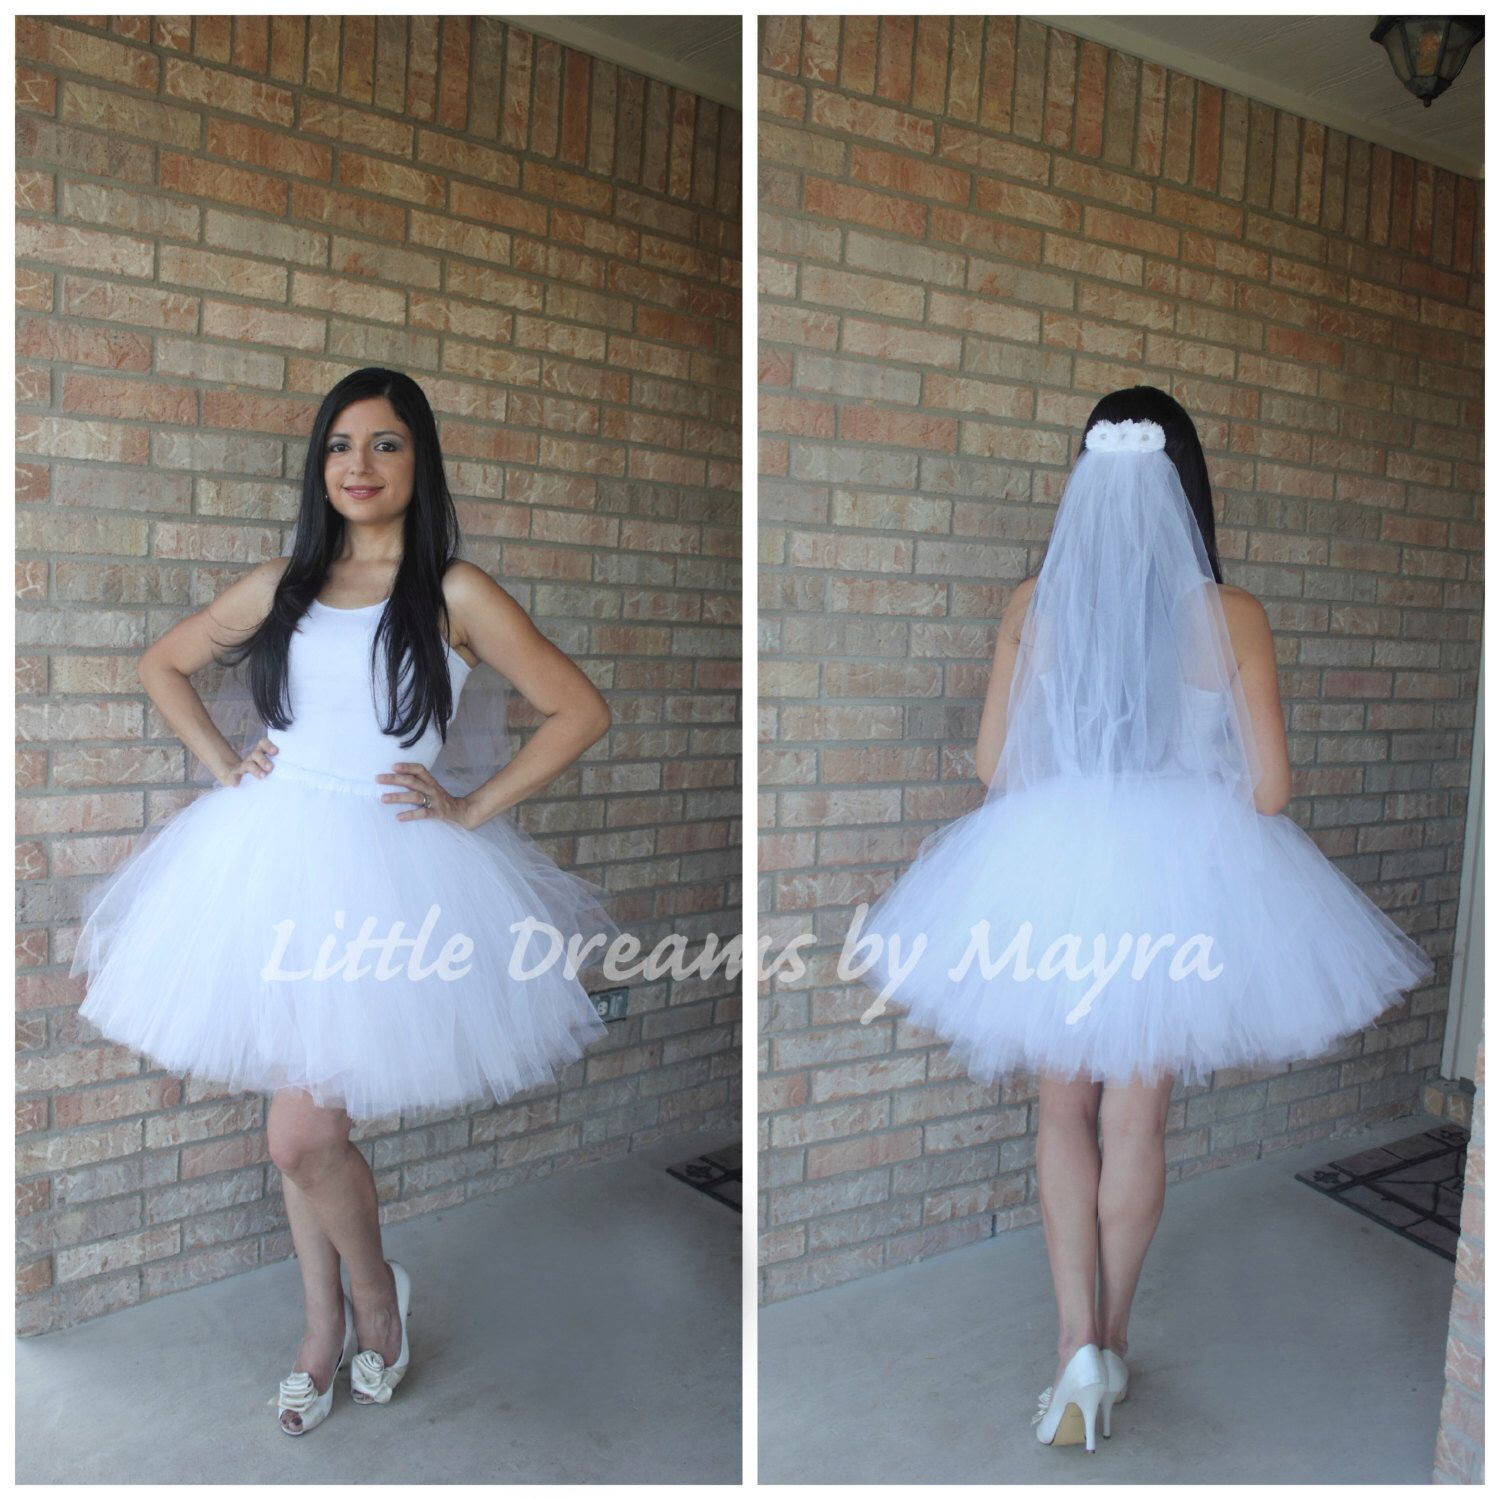 2daa5a83708be Bride bachelorette tutu skirt and veil, bridal tutu set, fun bachelorette  party decorations,